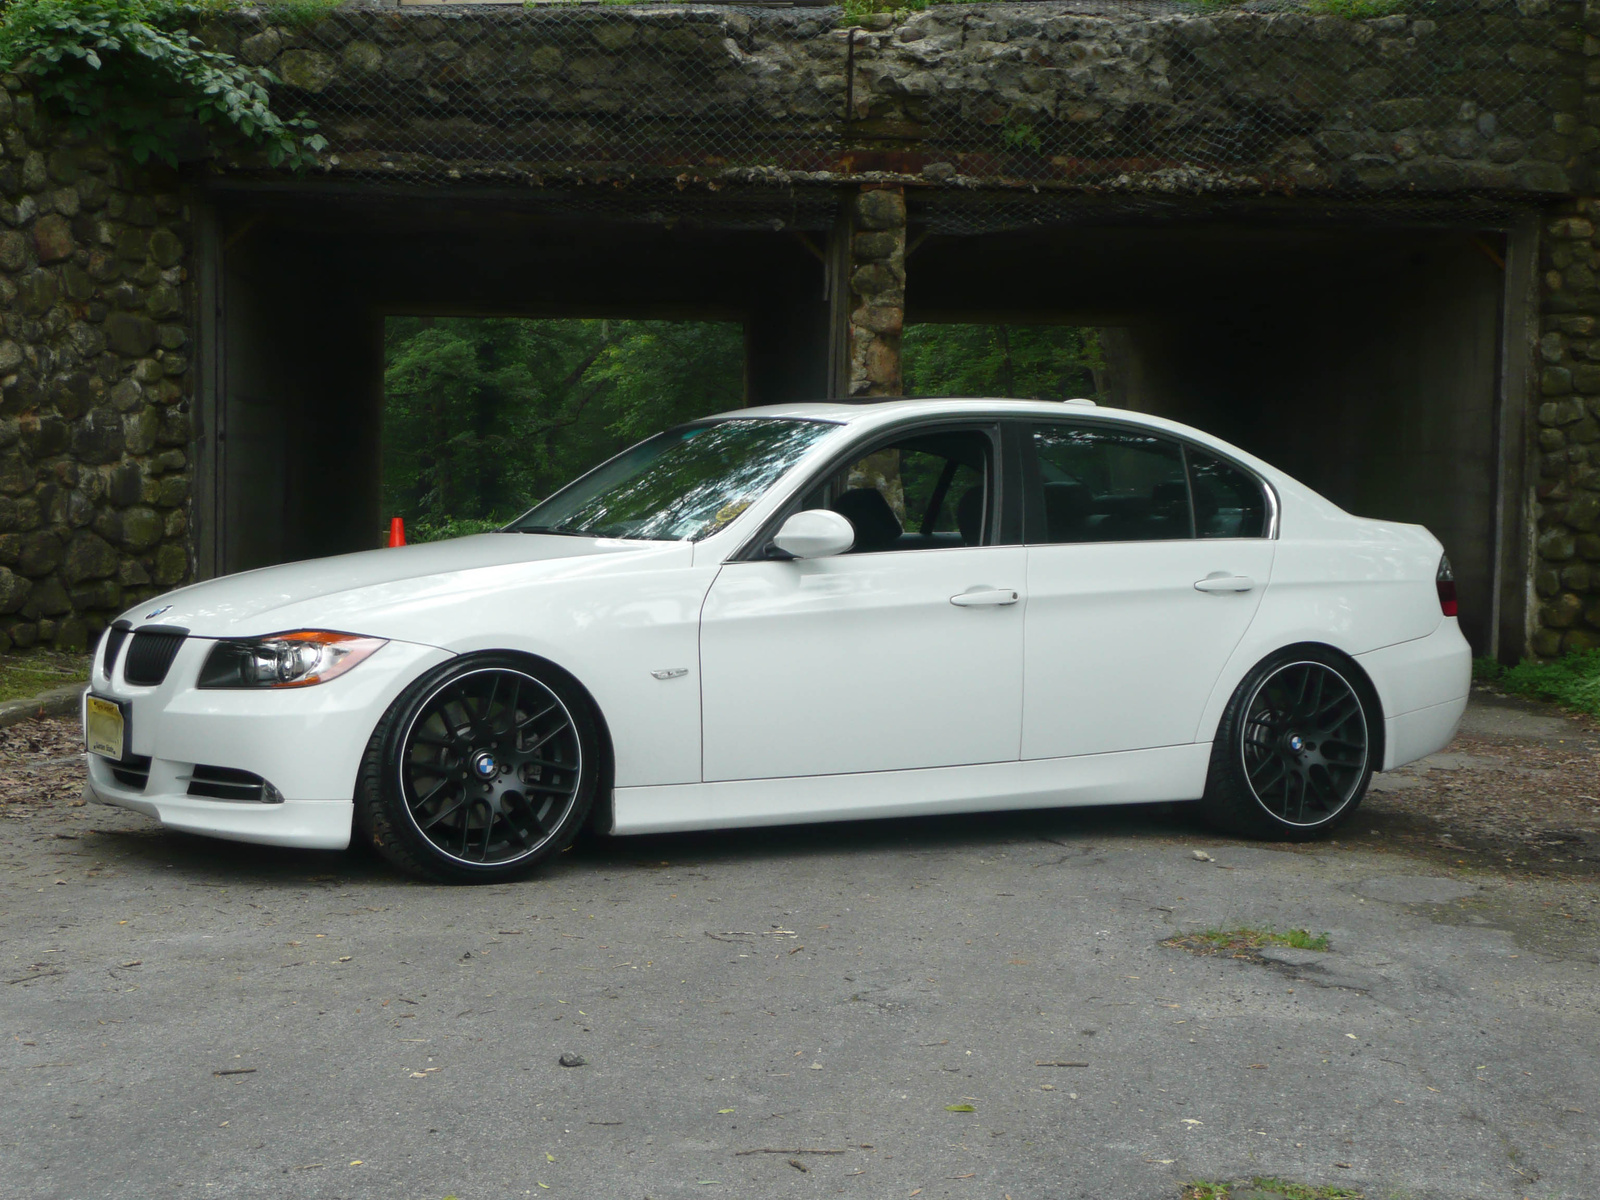 Bmw 330ci 2008 Review Amazing Pictures And Images Look